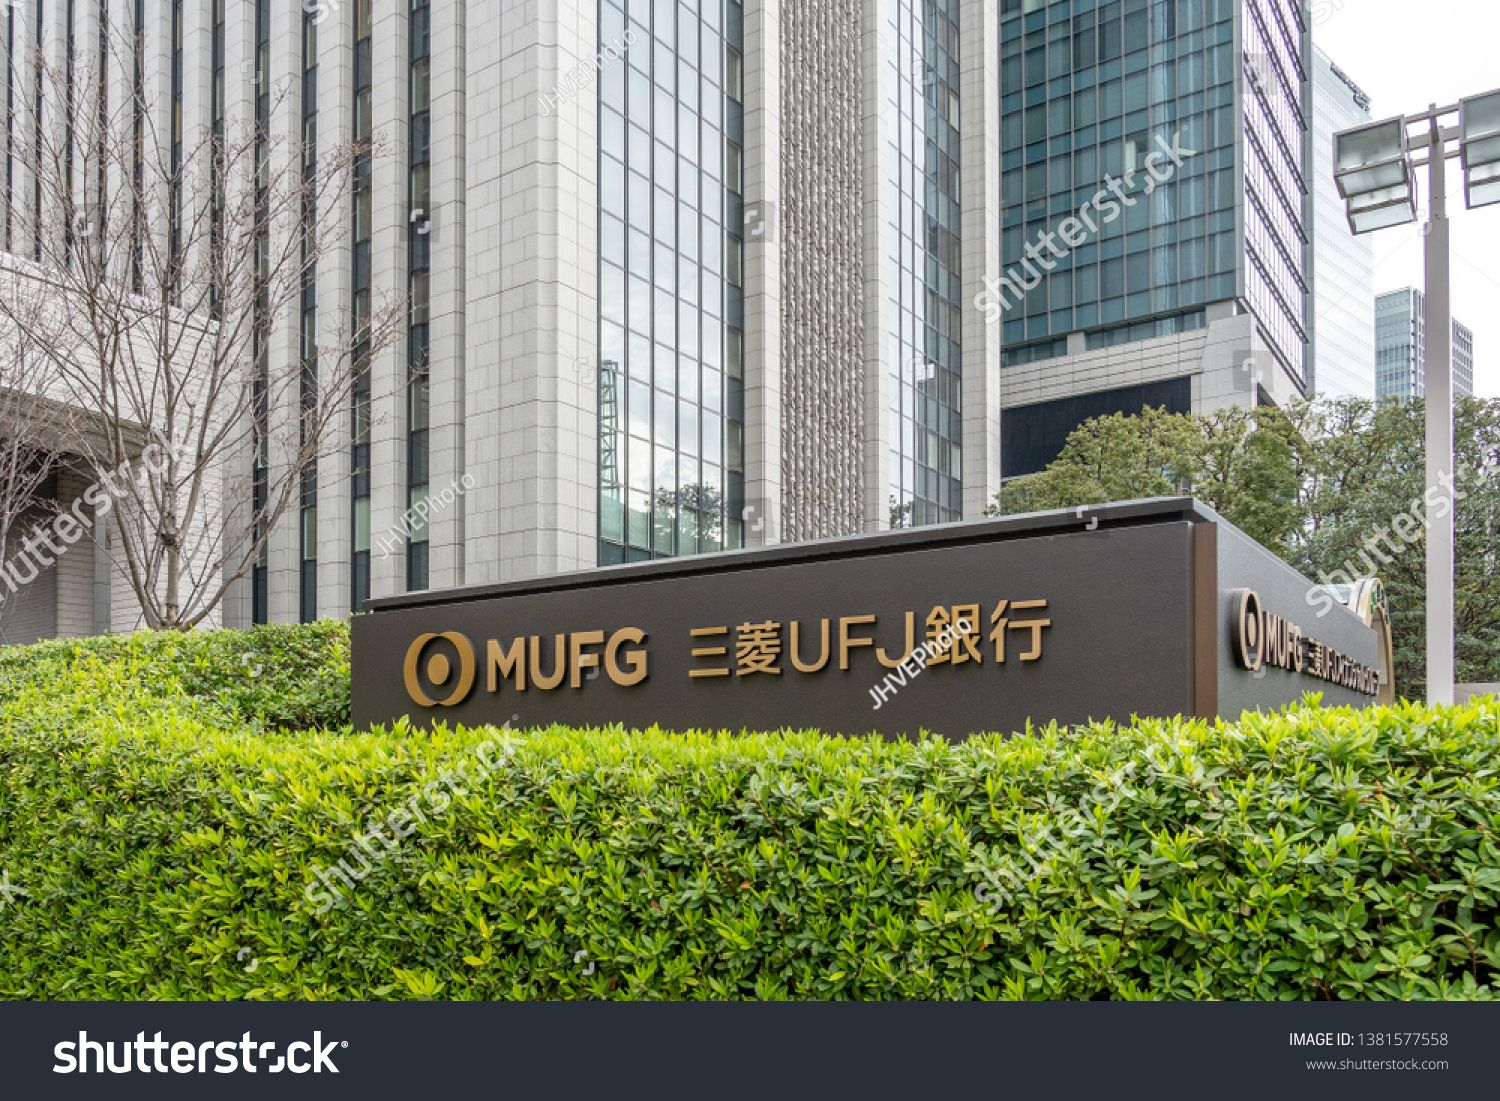 Tokyo Japan March 21 2019 Sign Of Mufg At Head Office In Tokyo Mitsubishi Ufj Financial Group Mufg Is A Japane Tokyo Japan Industrial Photography Tokyo